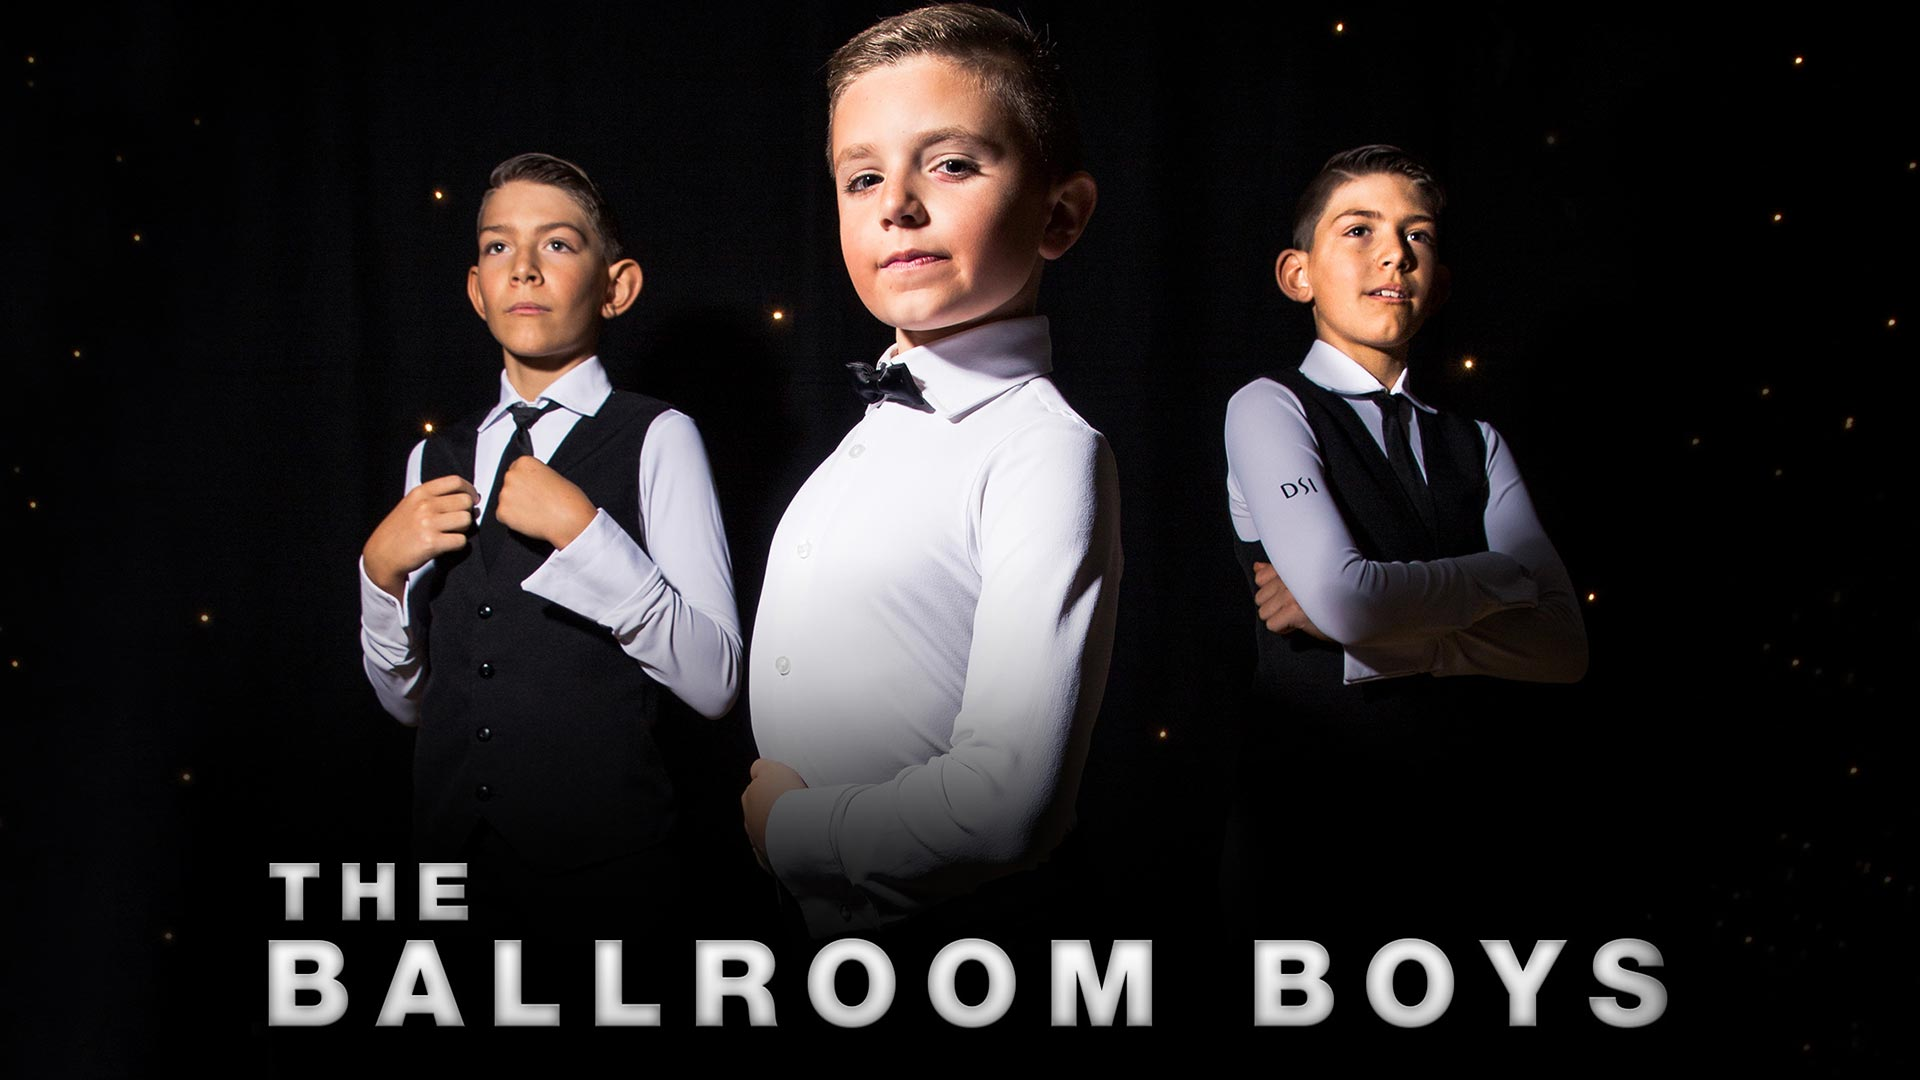 The Ballroom Boys